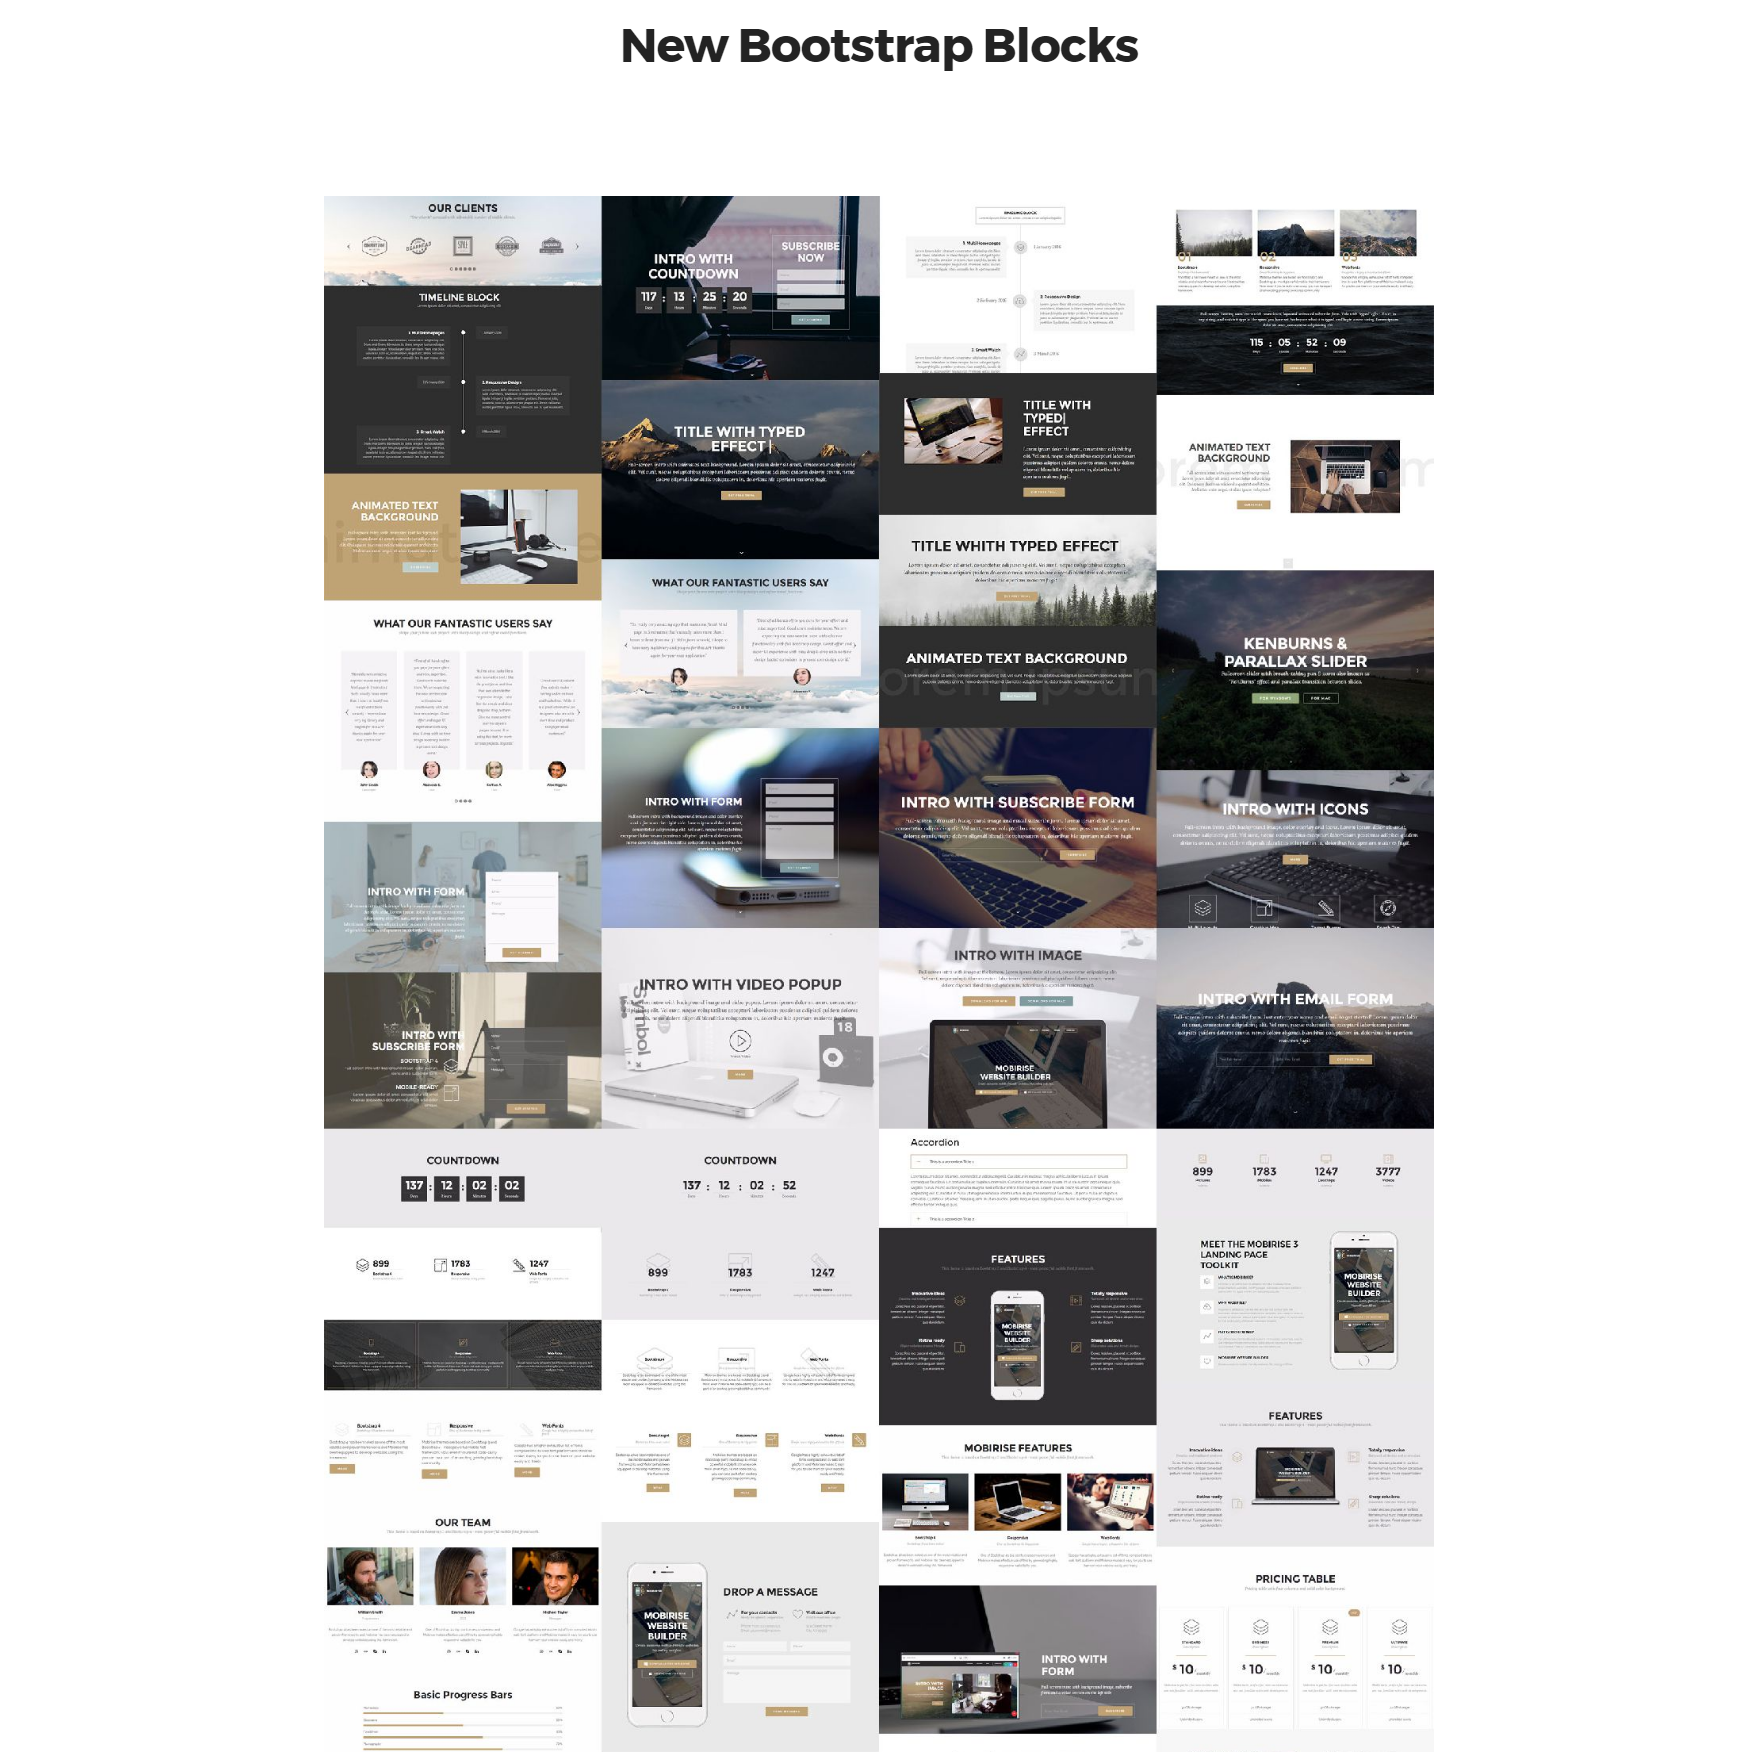 HTML5 Bootstrap 4 mobile-friendly blocks Templates